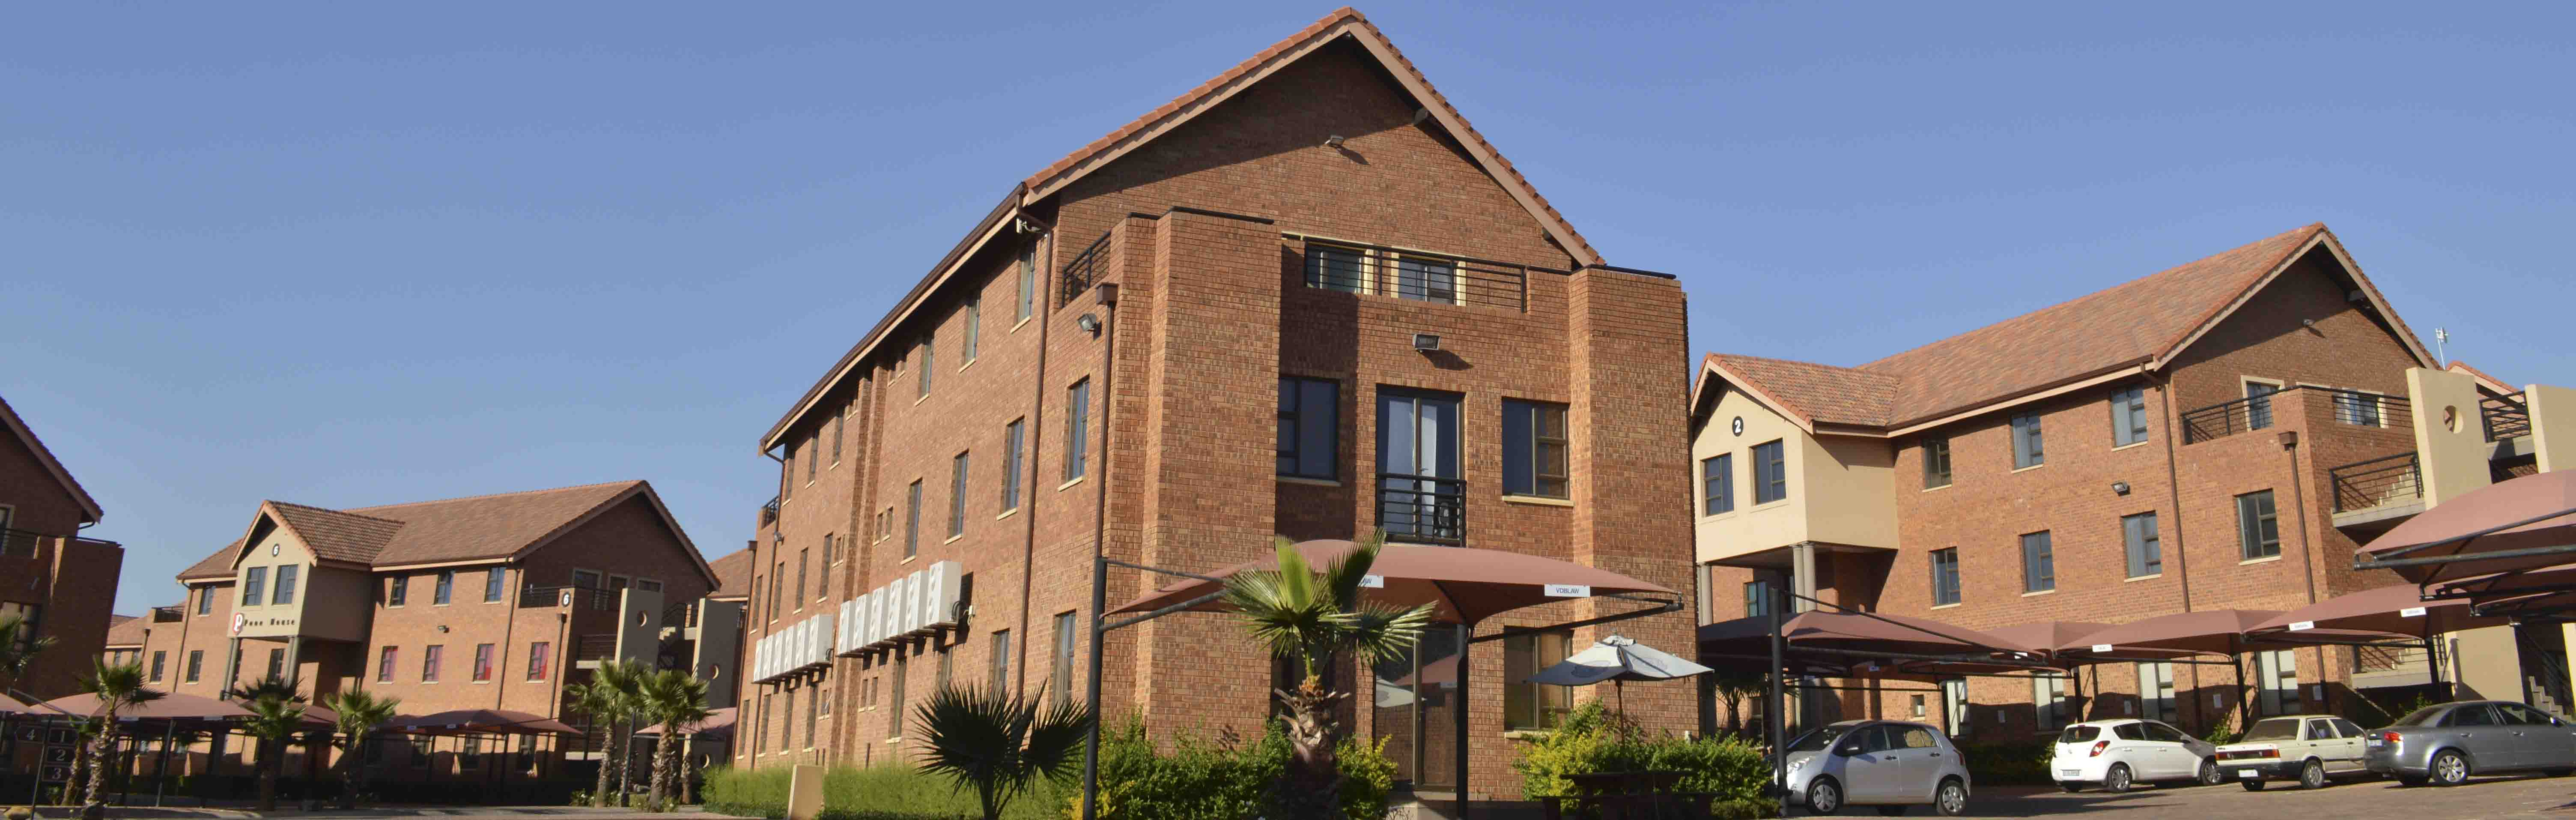 Fancourt Office Park 3